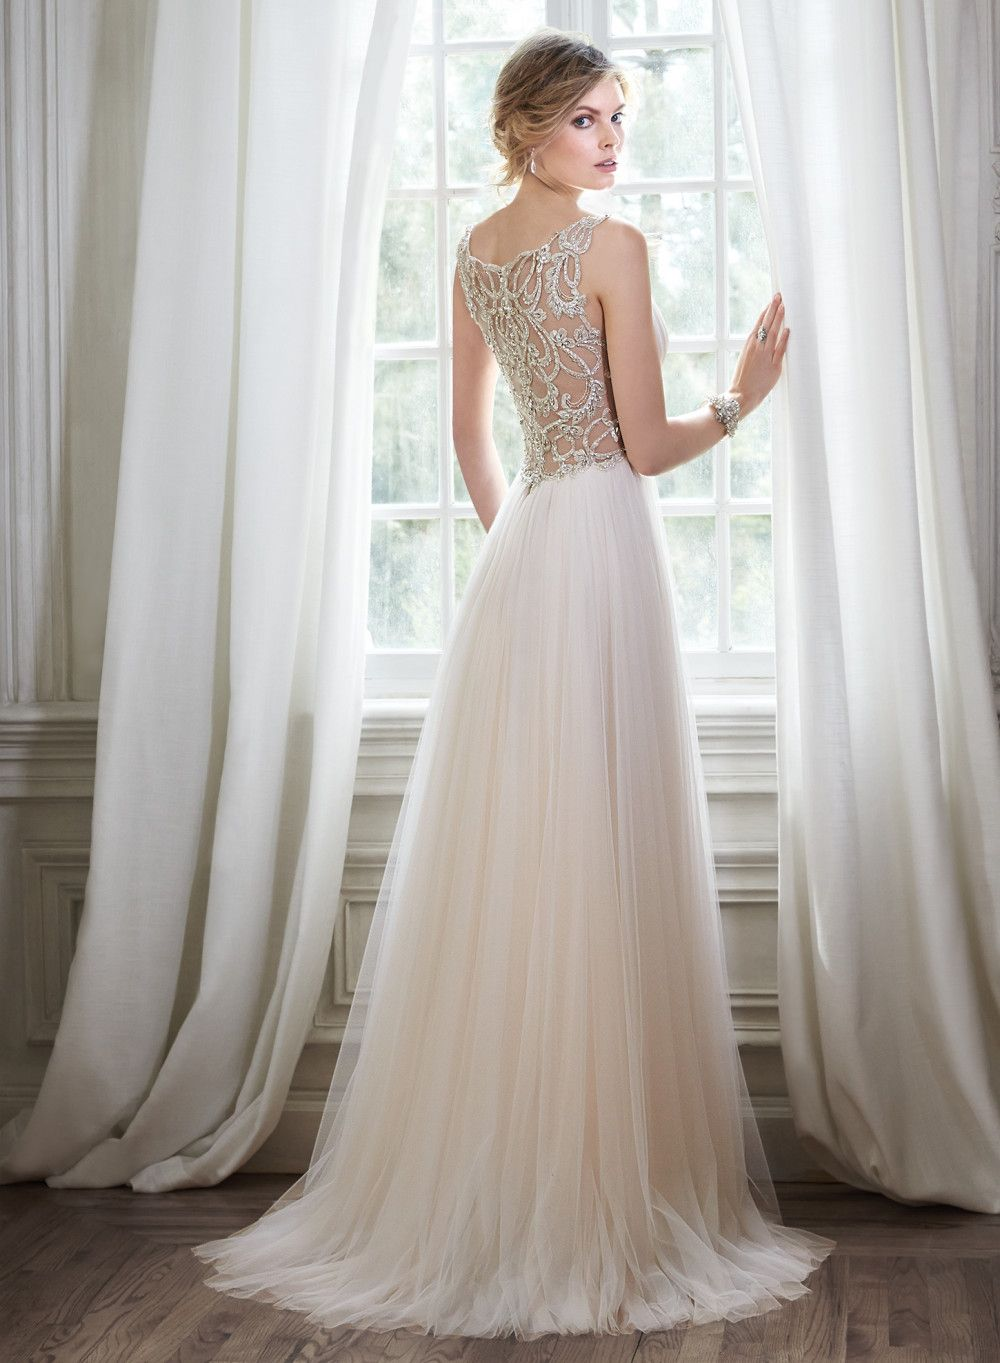 The Harrogate Wedding Lounge Stock Maggie Sottero Yorkshire   Wed me ...